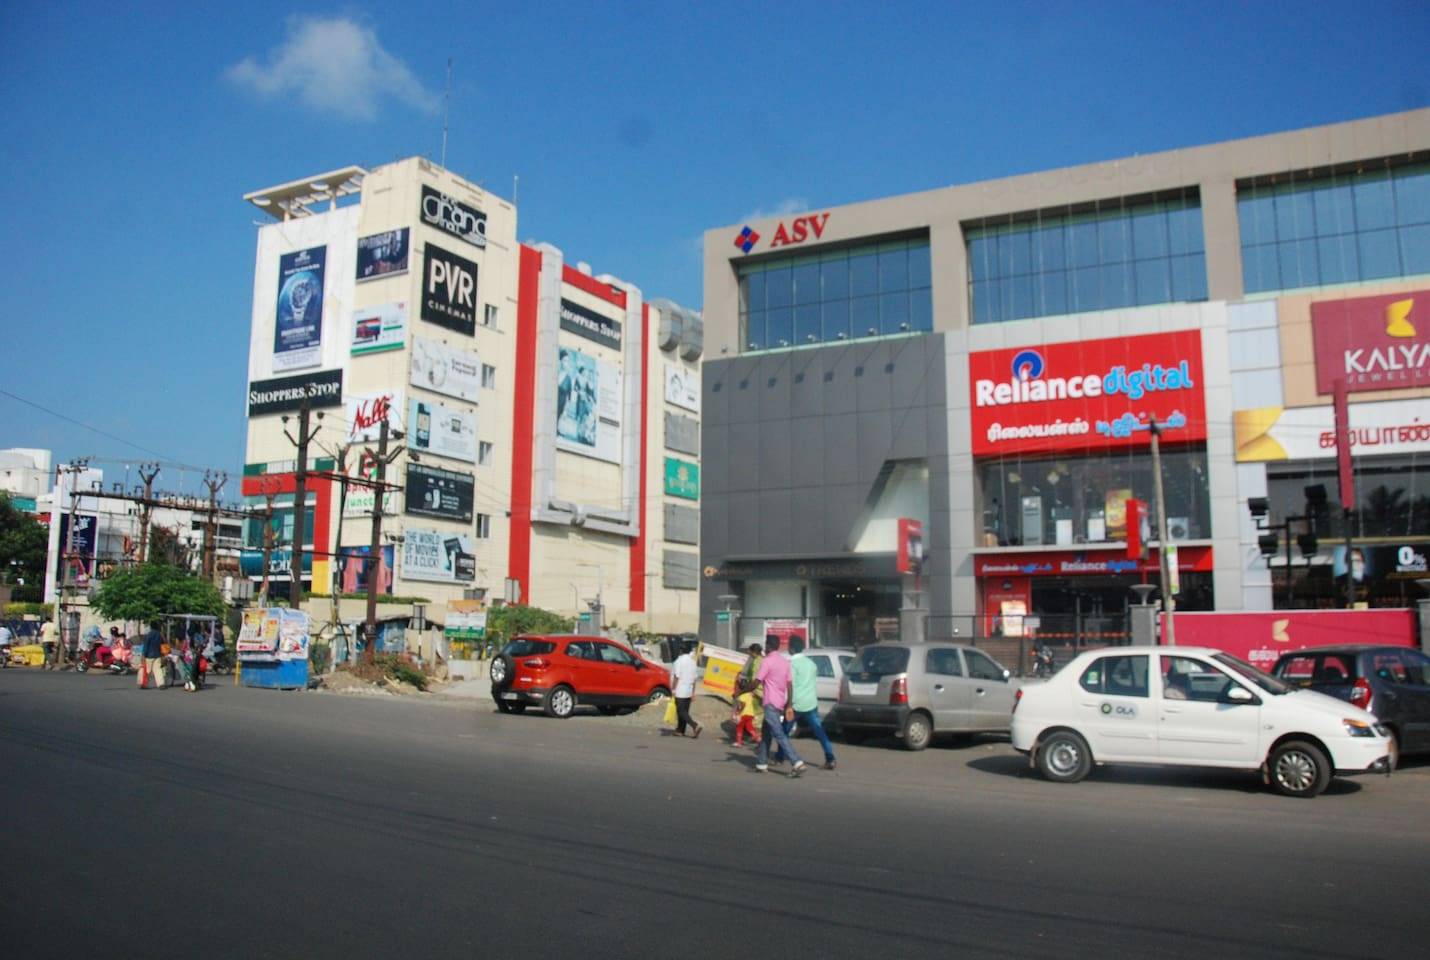 Five minutes travel to PVR Grand Mall and Reliance Digital